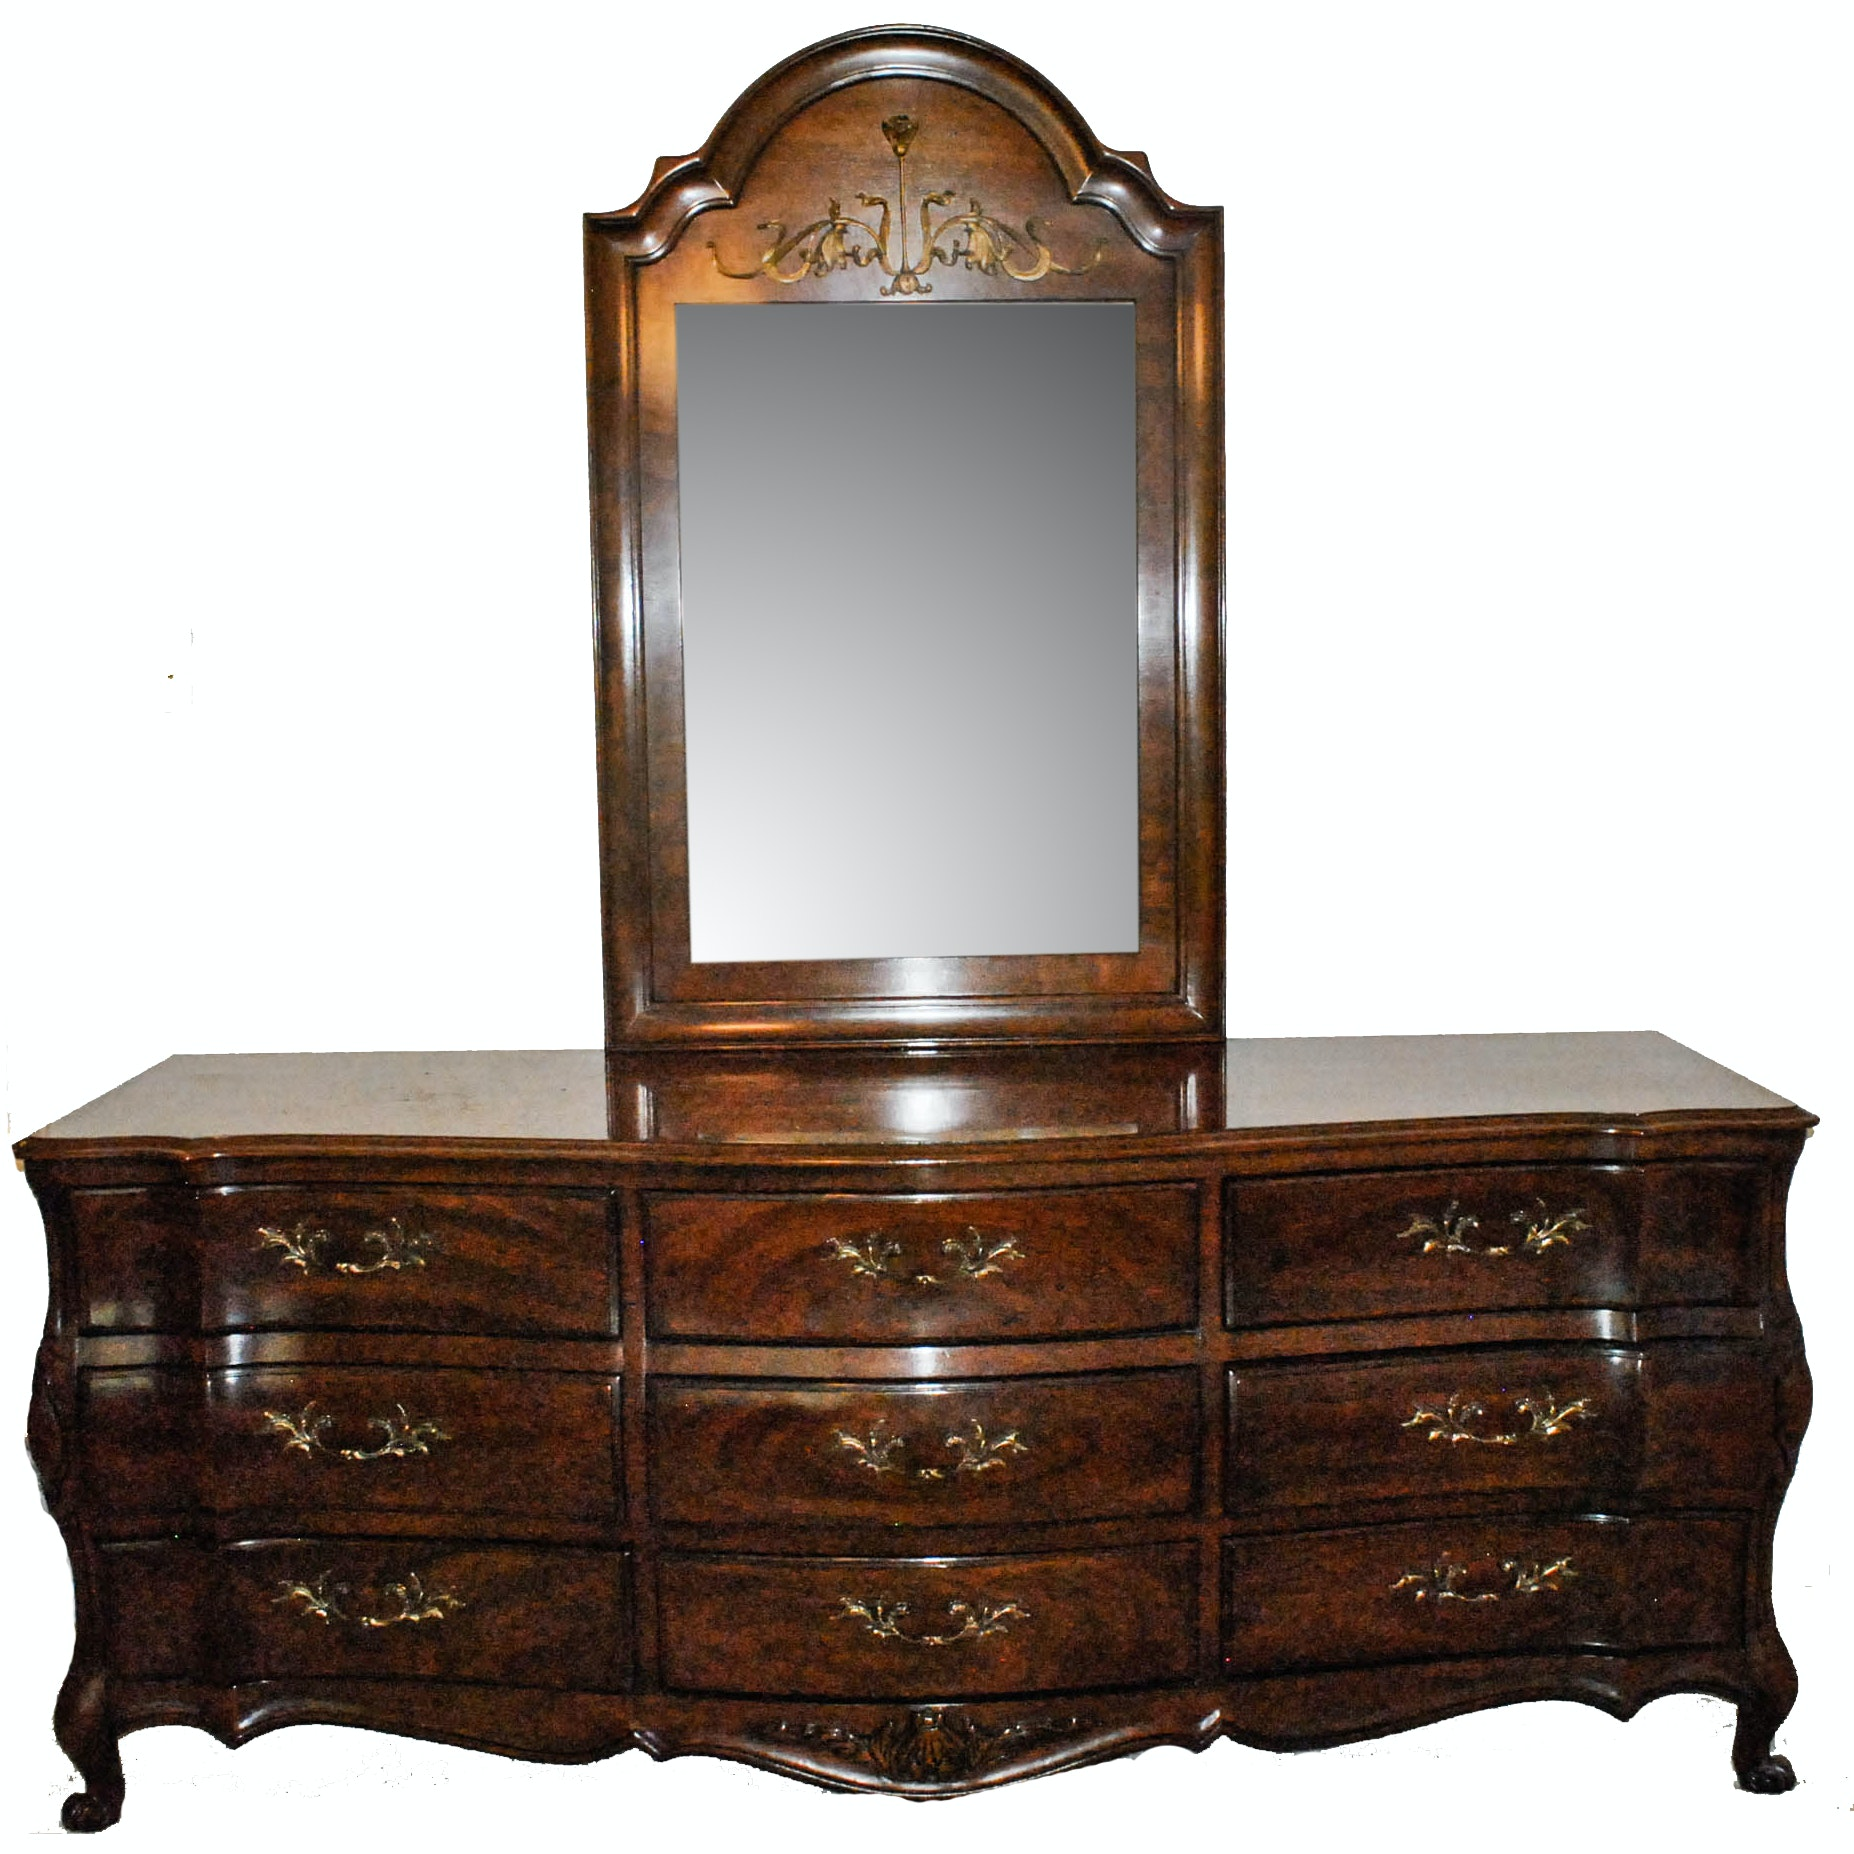 Vintage French Provincial Style Dresser with Mirror by White Furniture